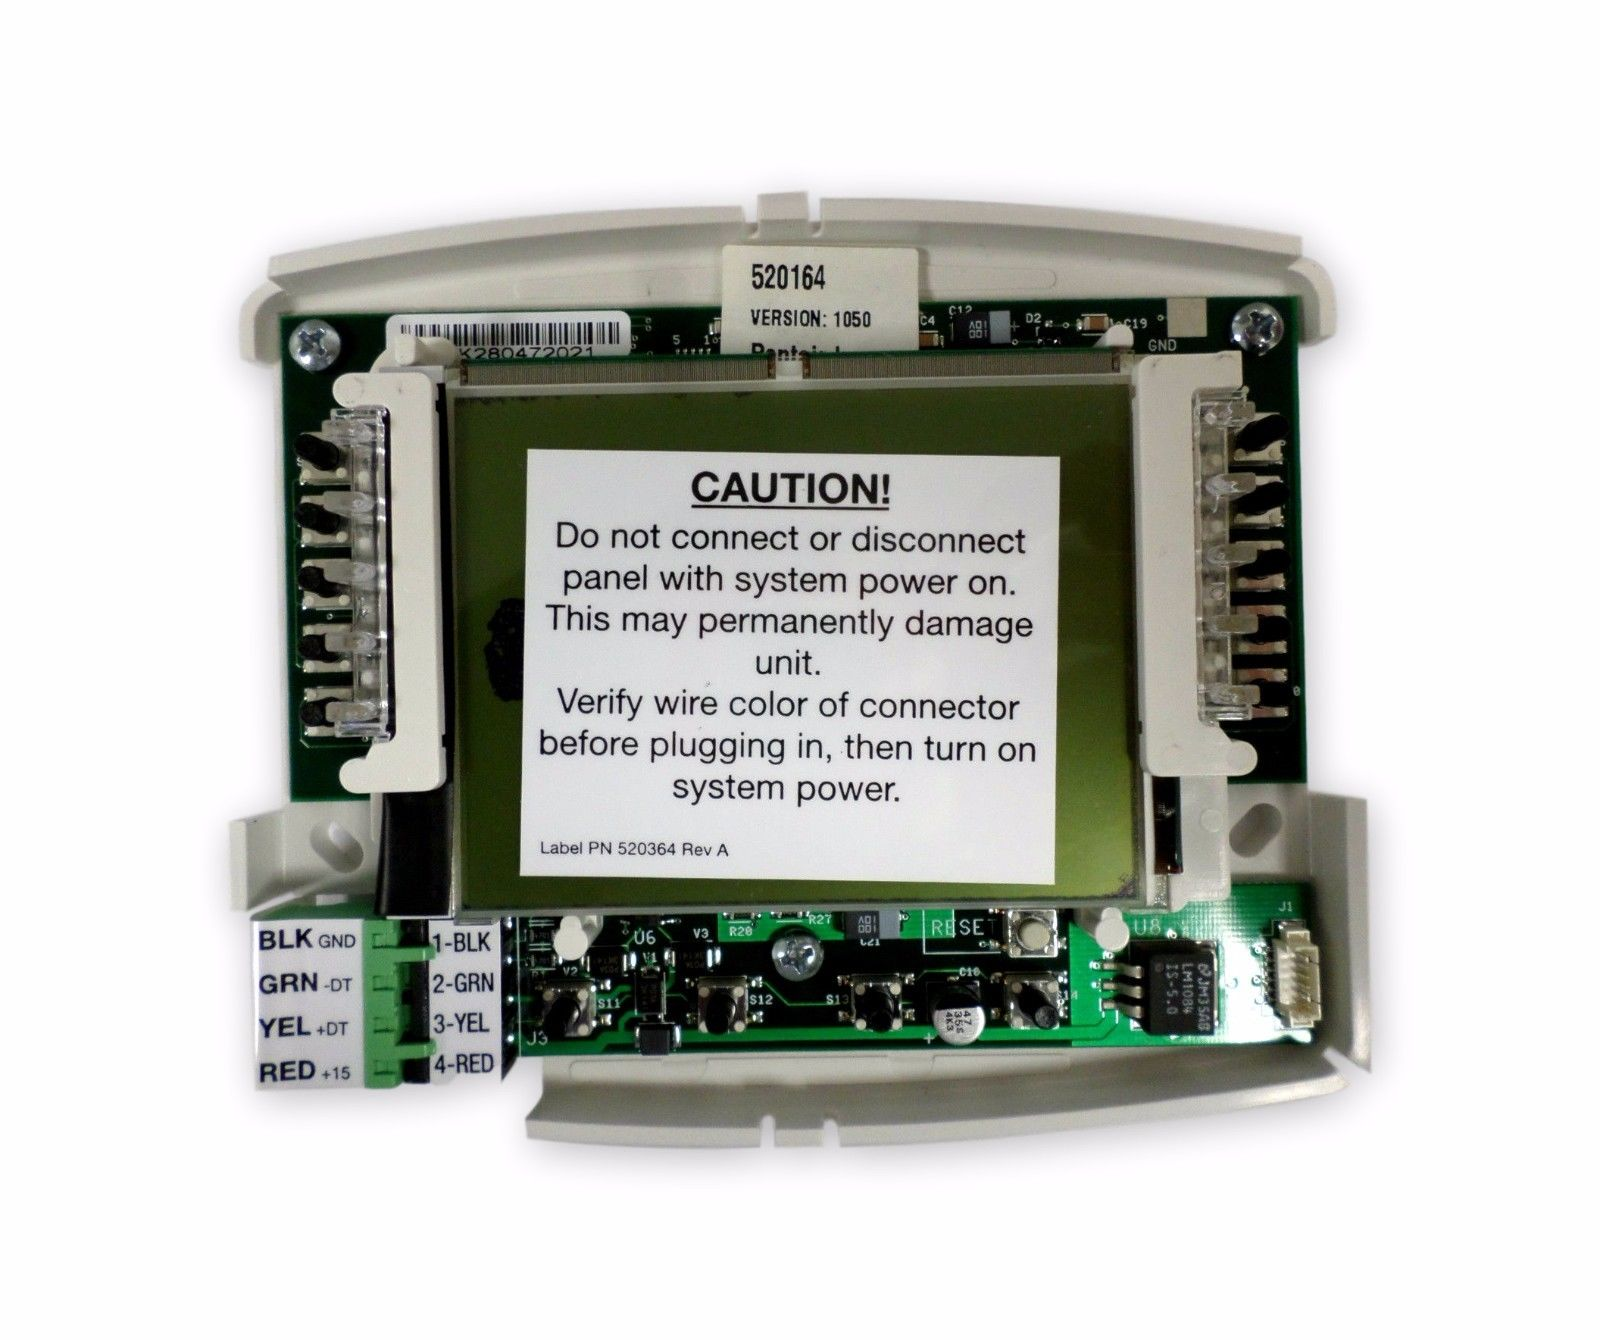 Pentair 520274 PCB Indoor Control Panel White Intellitouch Circuit Board Replace by Pentair